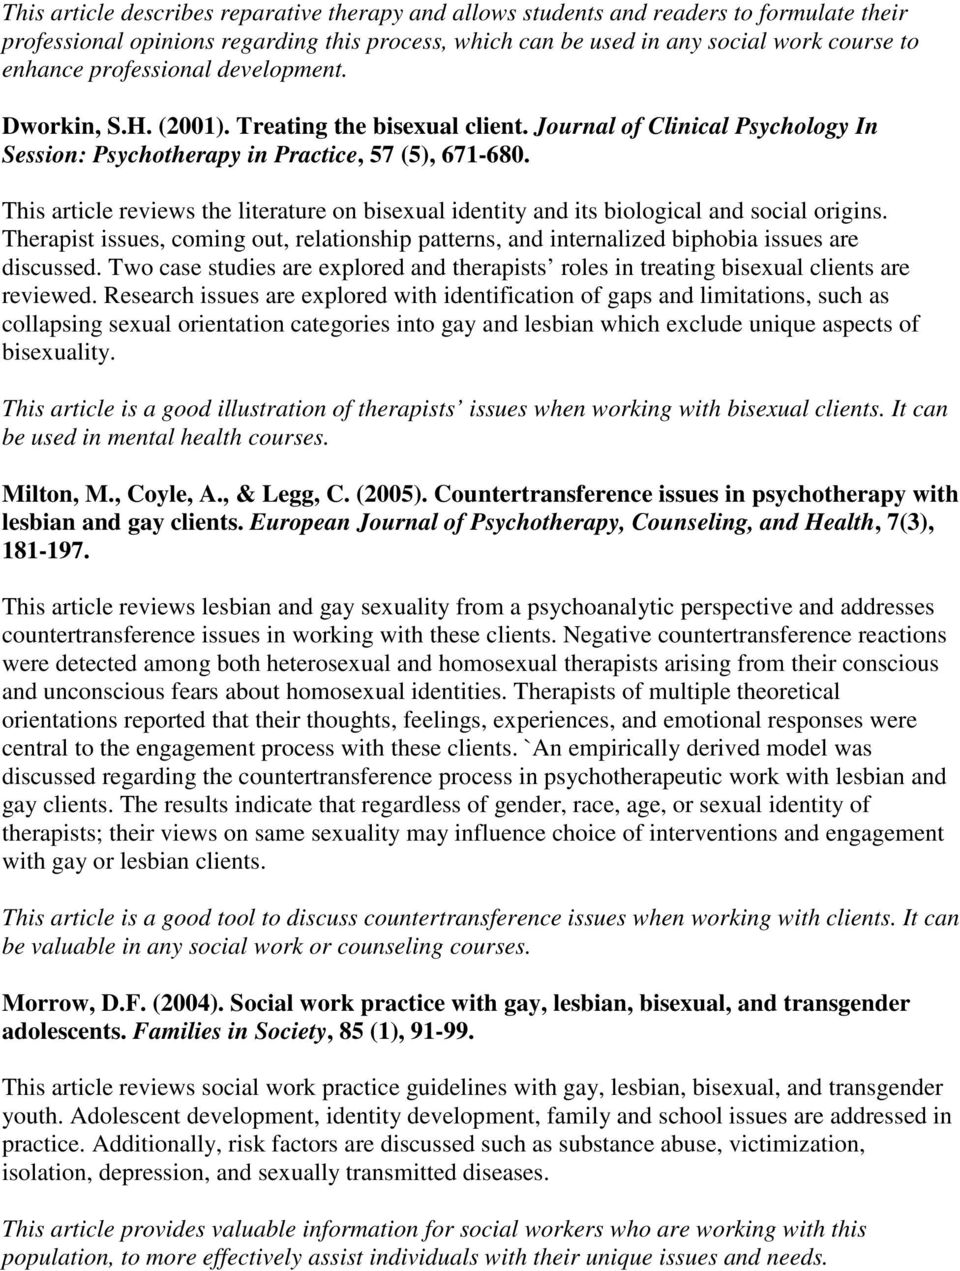 This article reviews the literature on bisexual identity and its biological and social origins. Therapist issues, coming out, relationship patterns, and internalized biphobia issues are discussed.